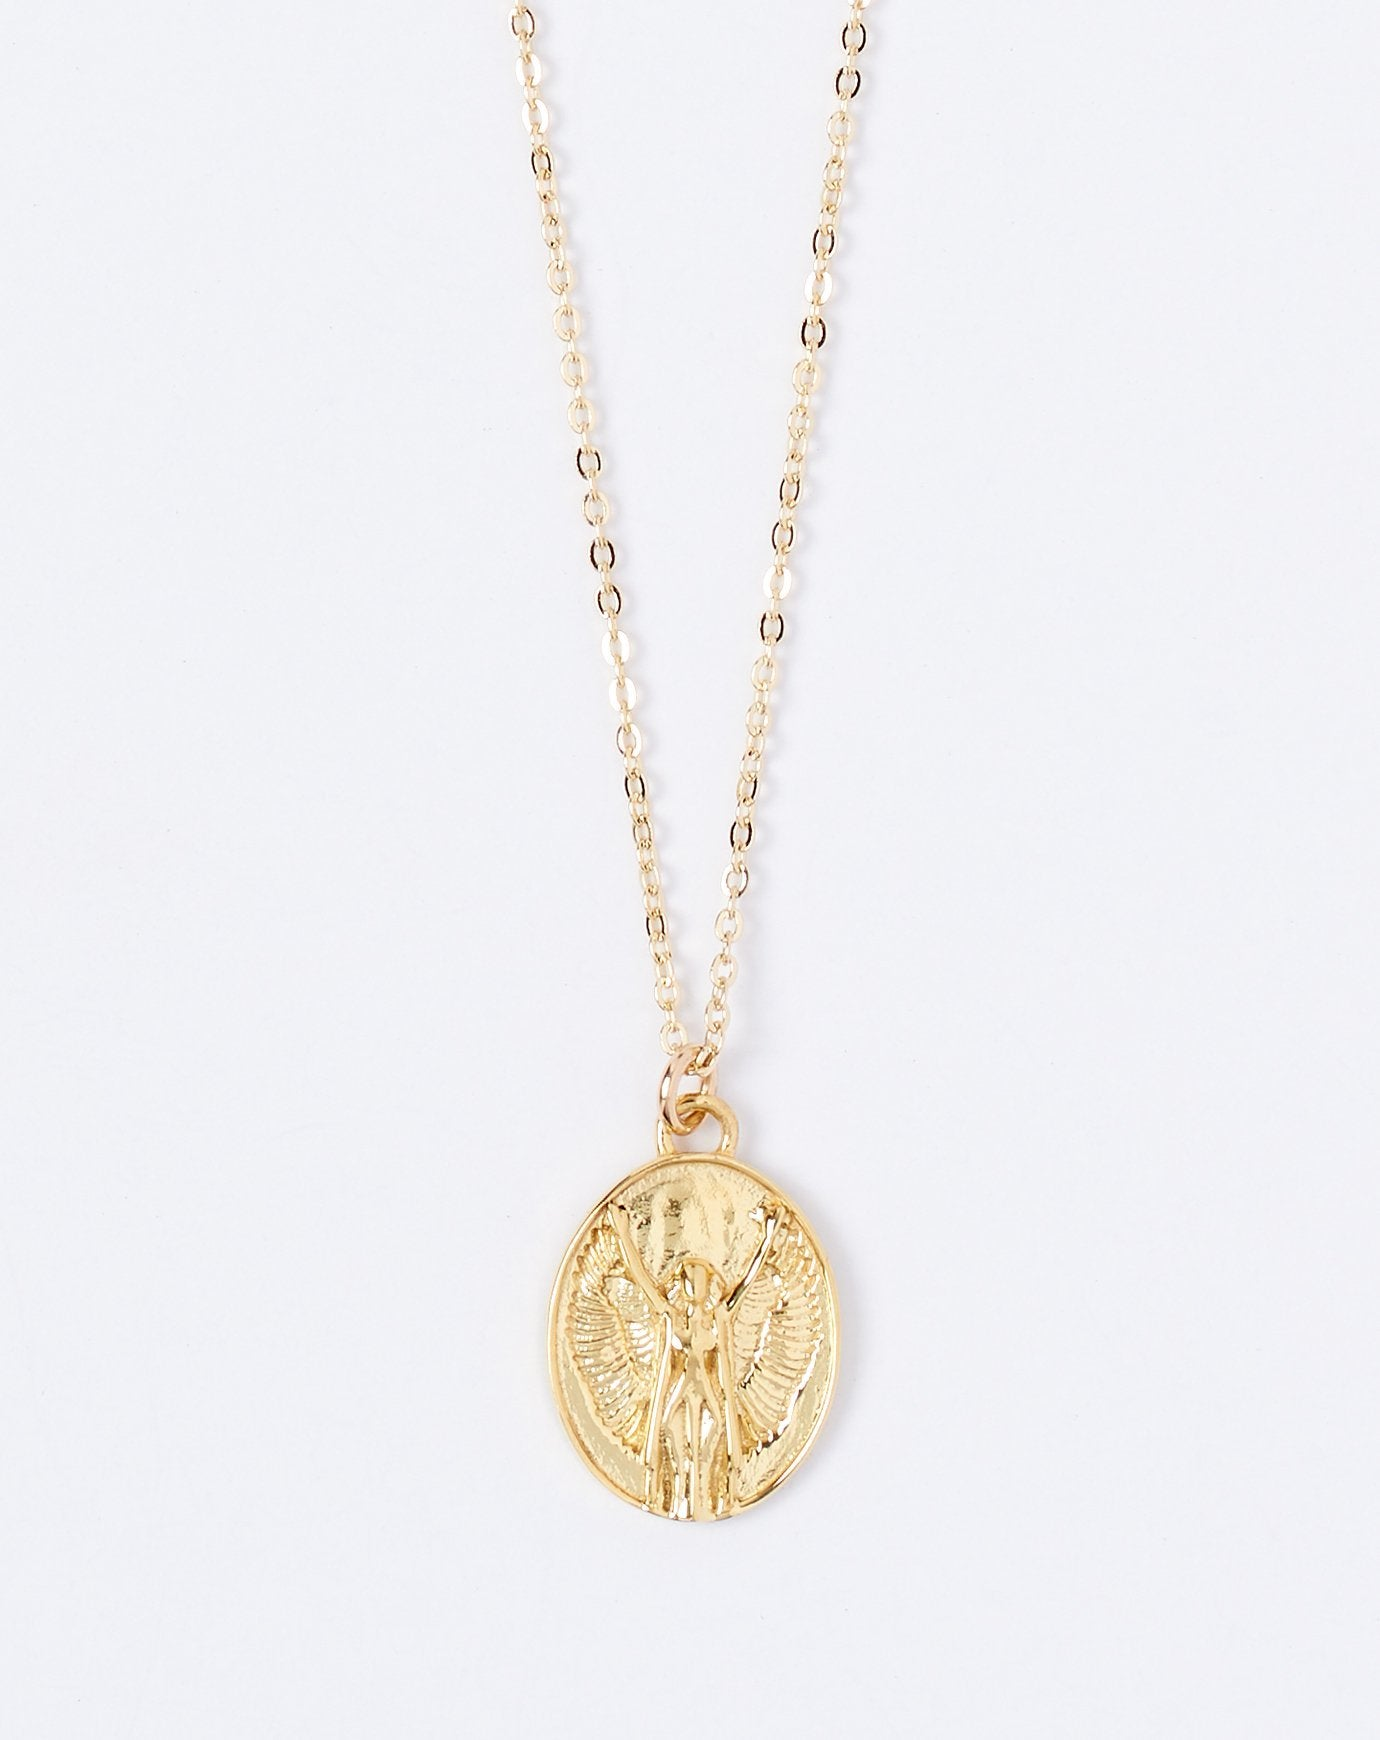 Talon Zodiac Pendant Necklace - Virgo